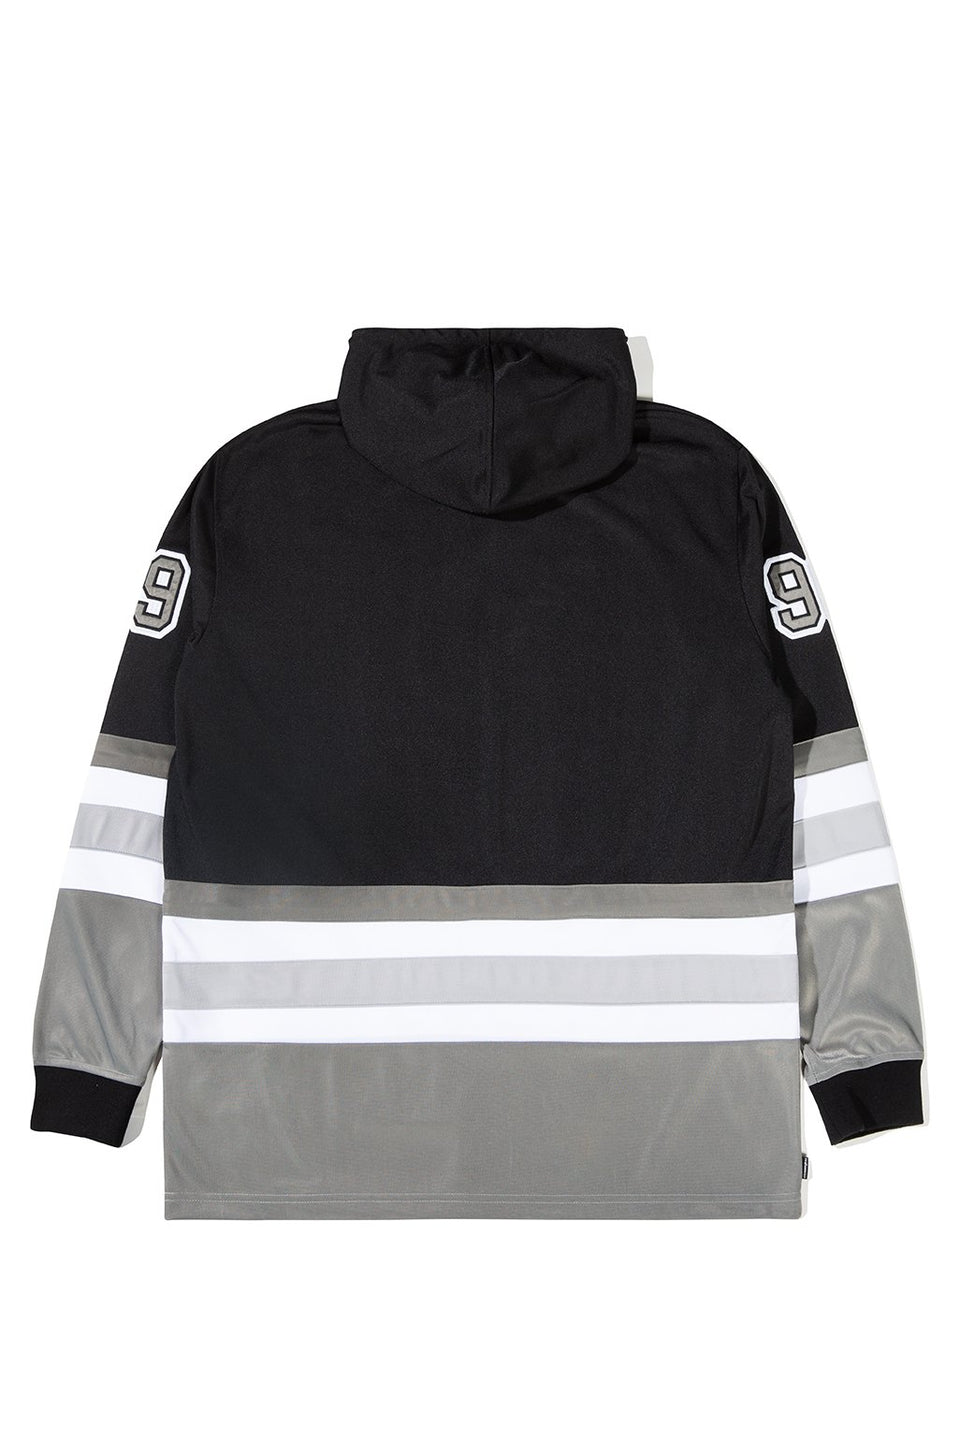 The Hundreds Greats Hooded L/S Jersey TOPS Black